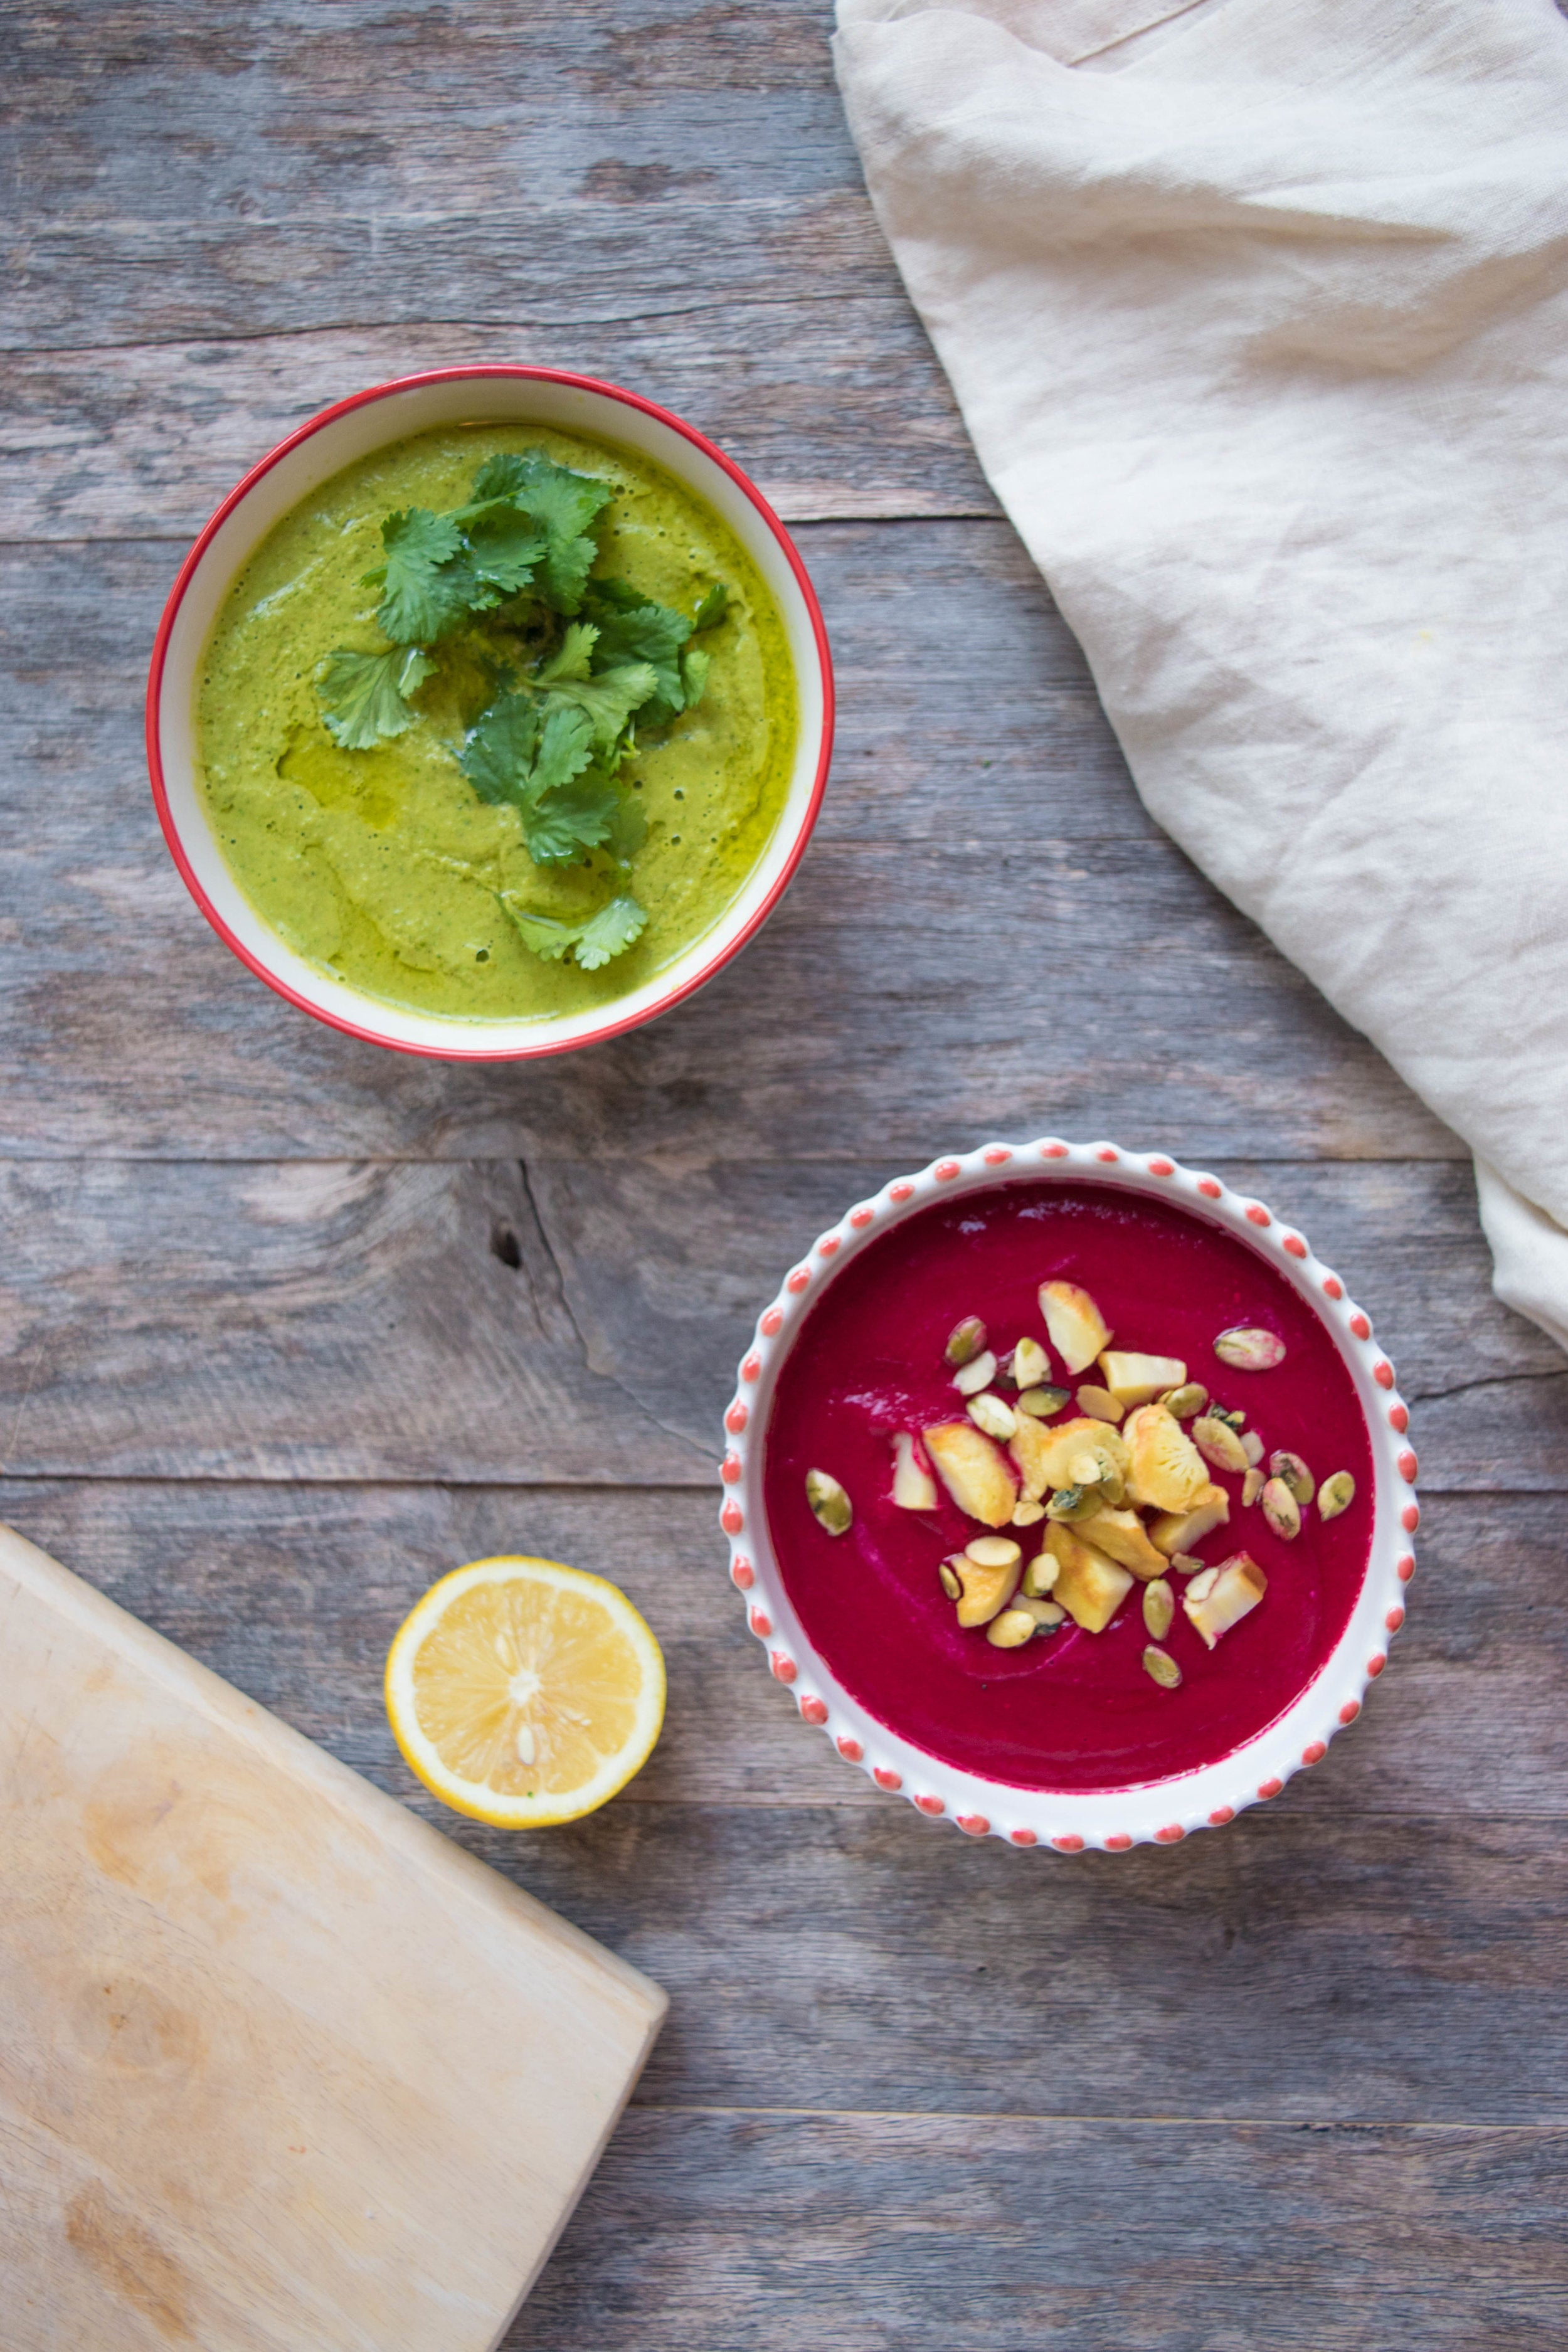 10-Minute Cleansing Green Soup